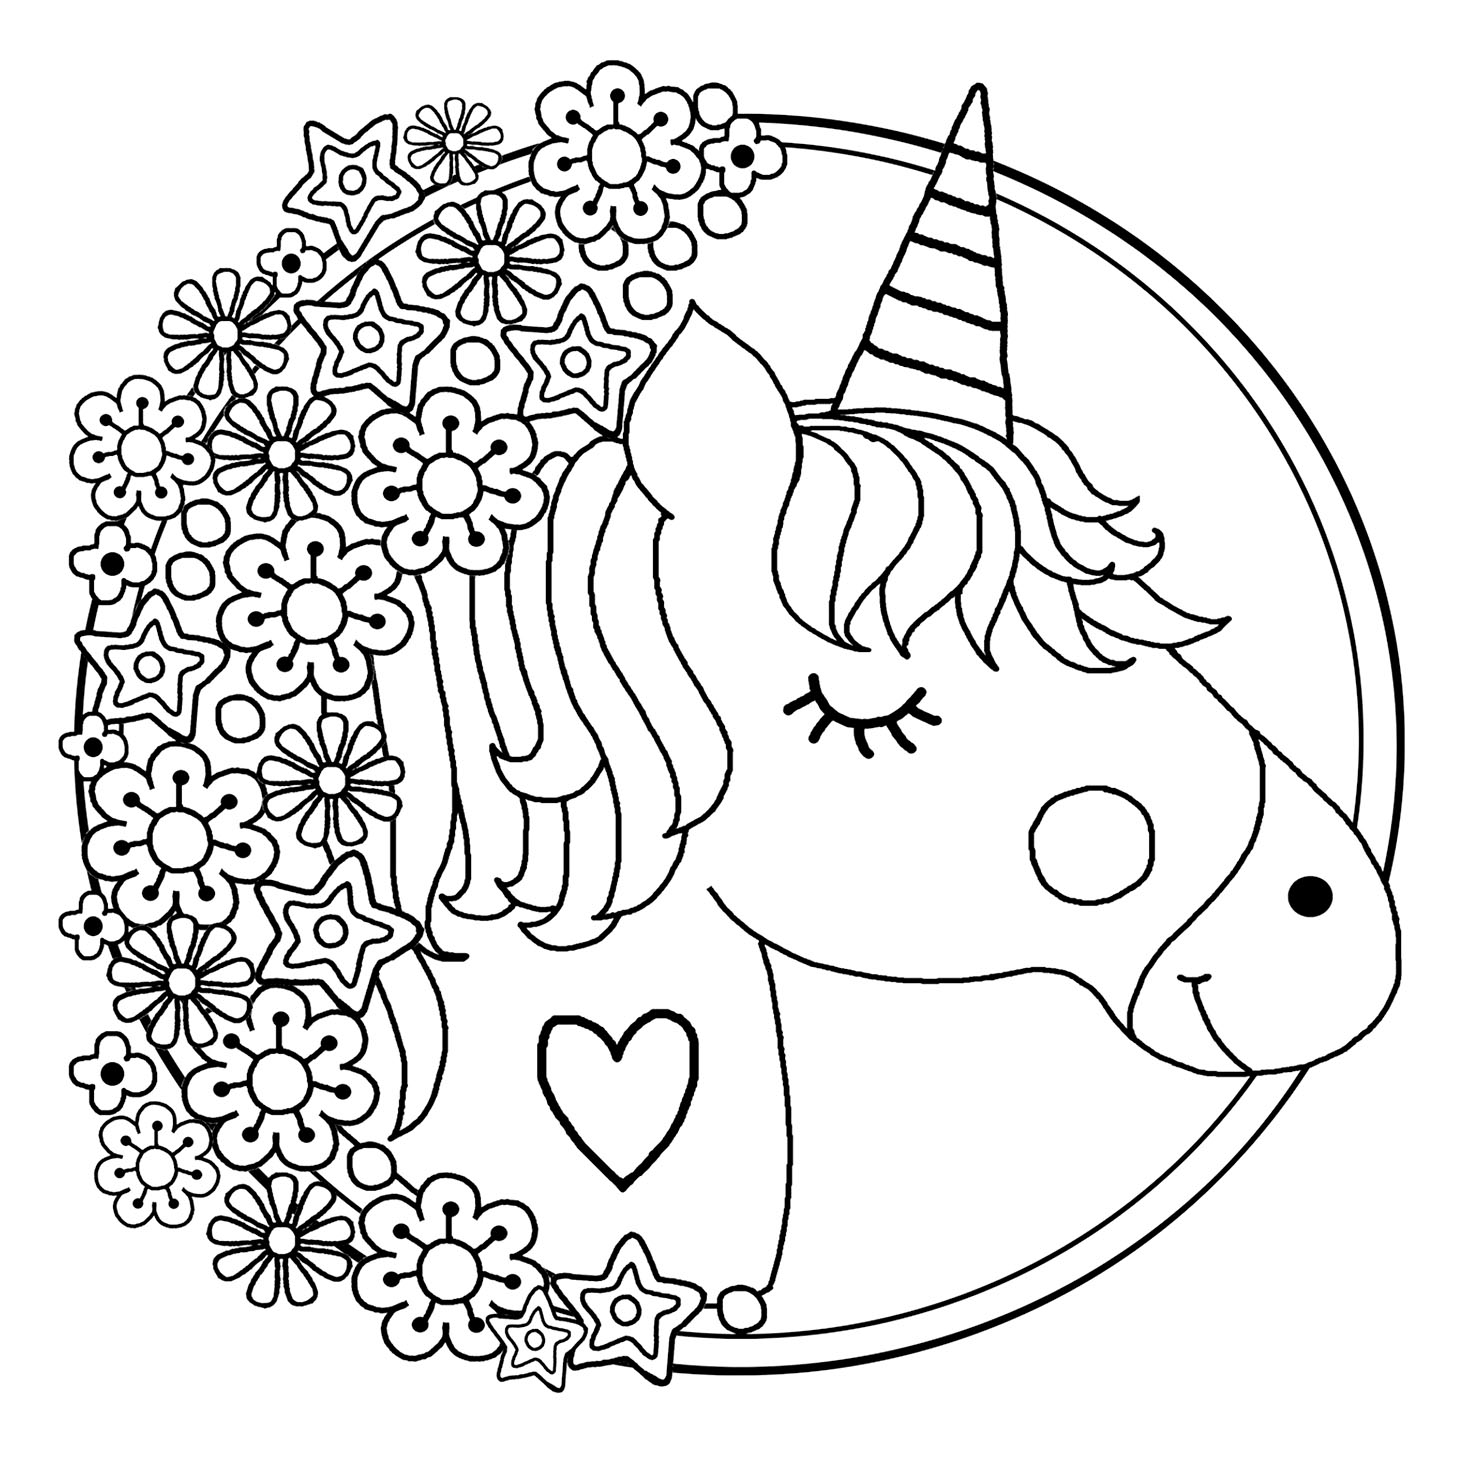 print unicorn coloring sheet unicorn coloring pages to download and print for free sheet coloring print unicorn